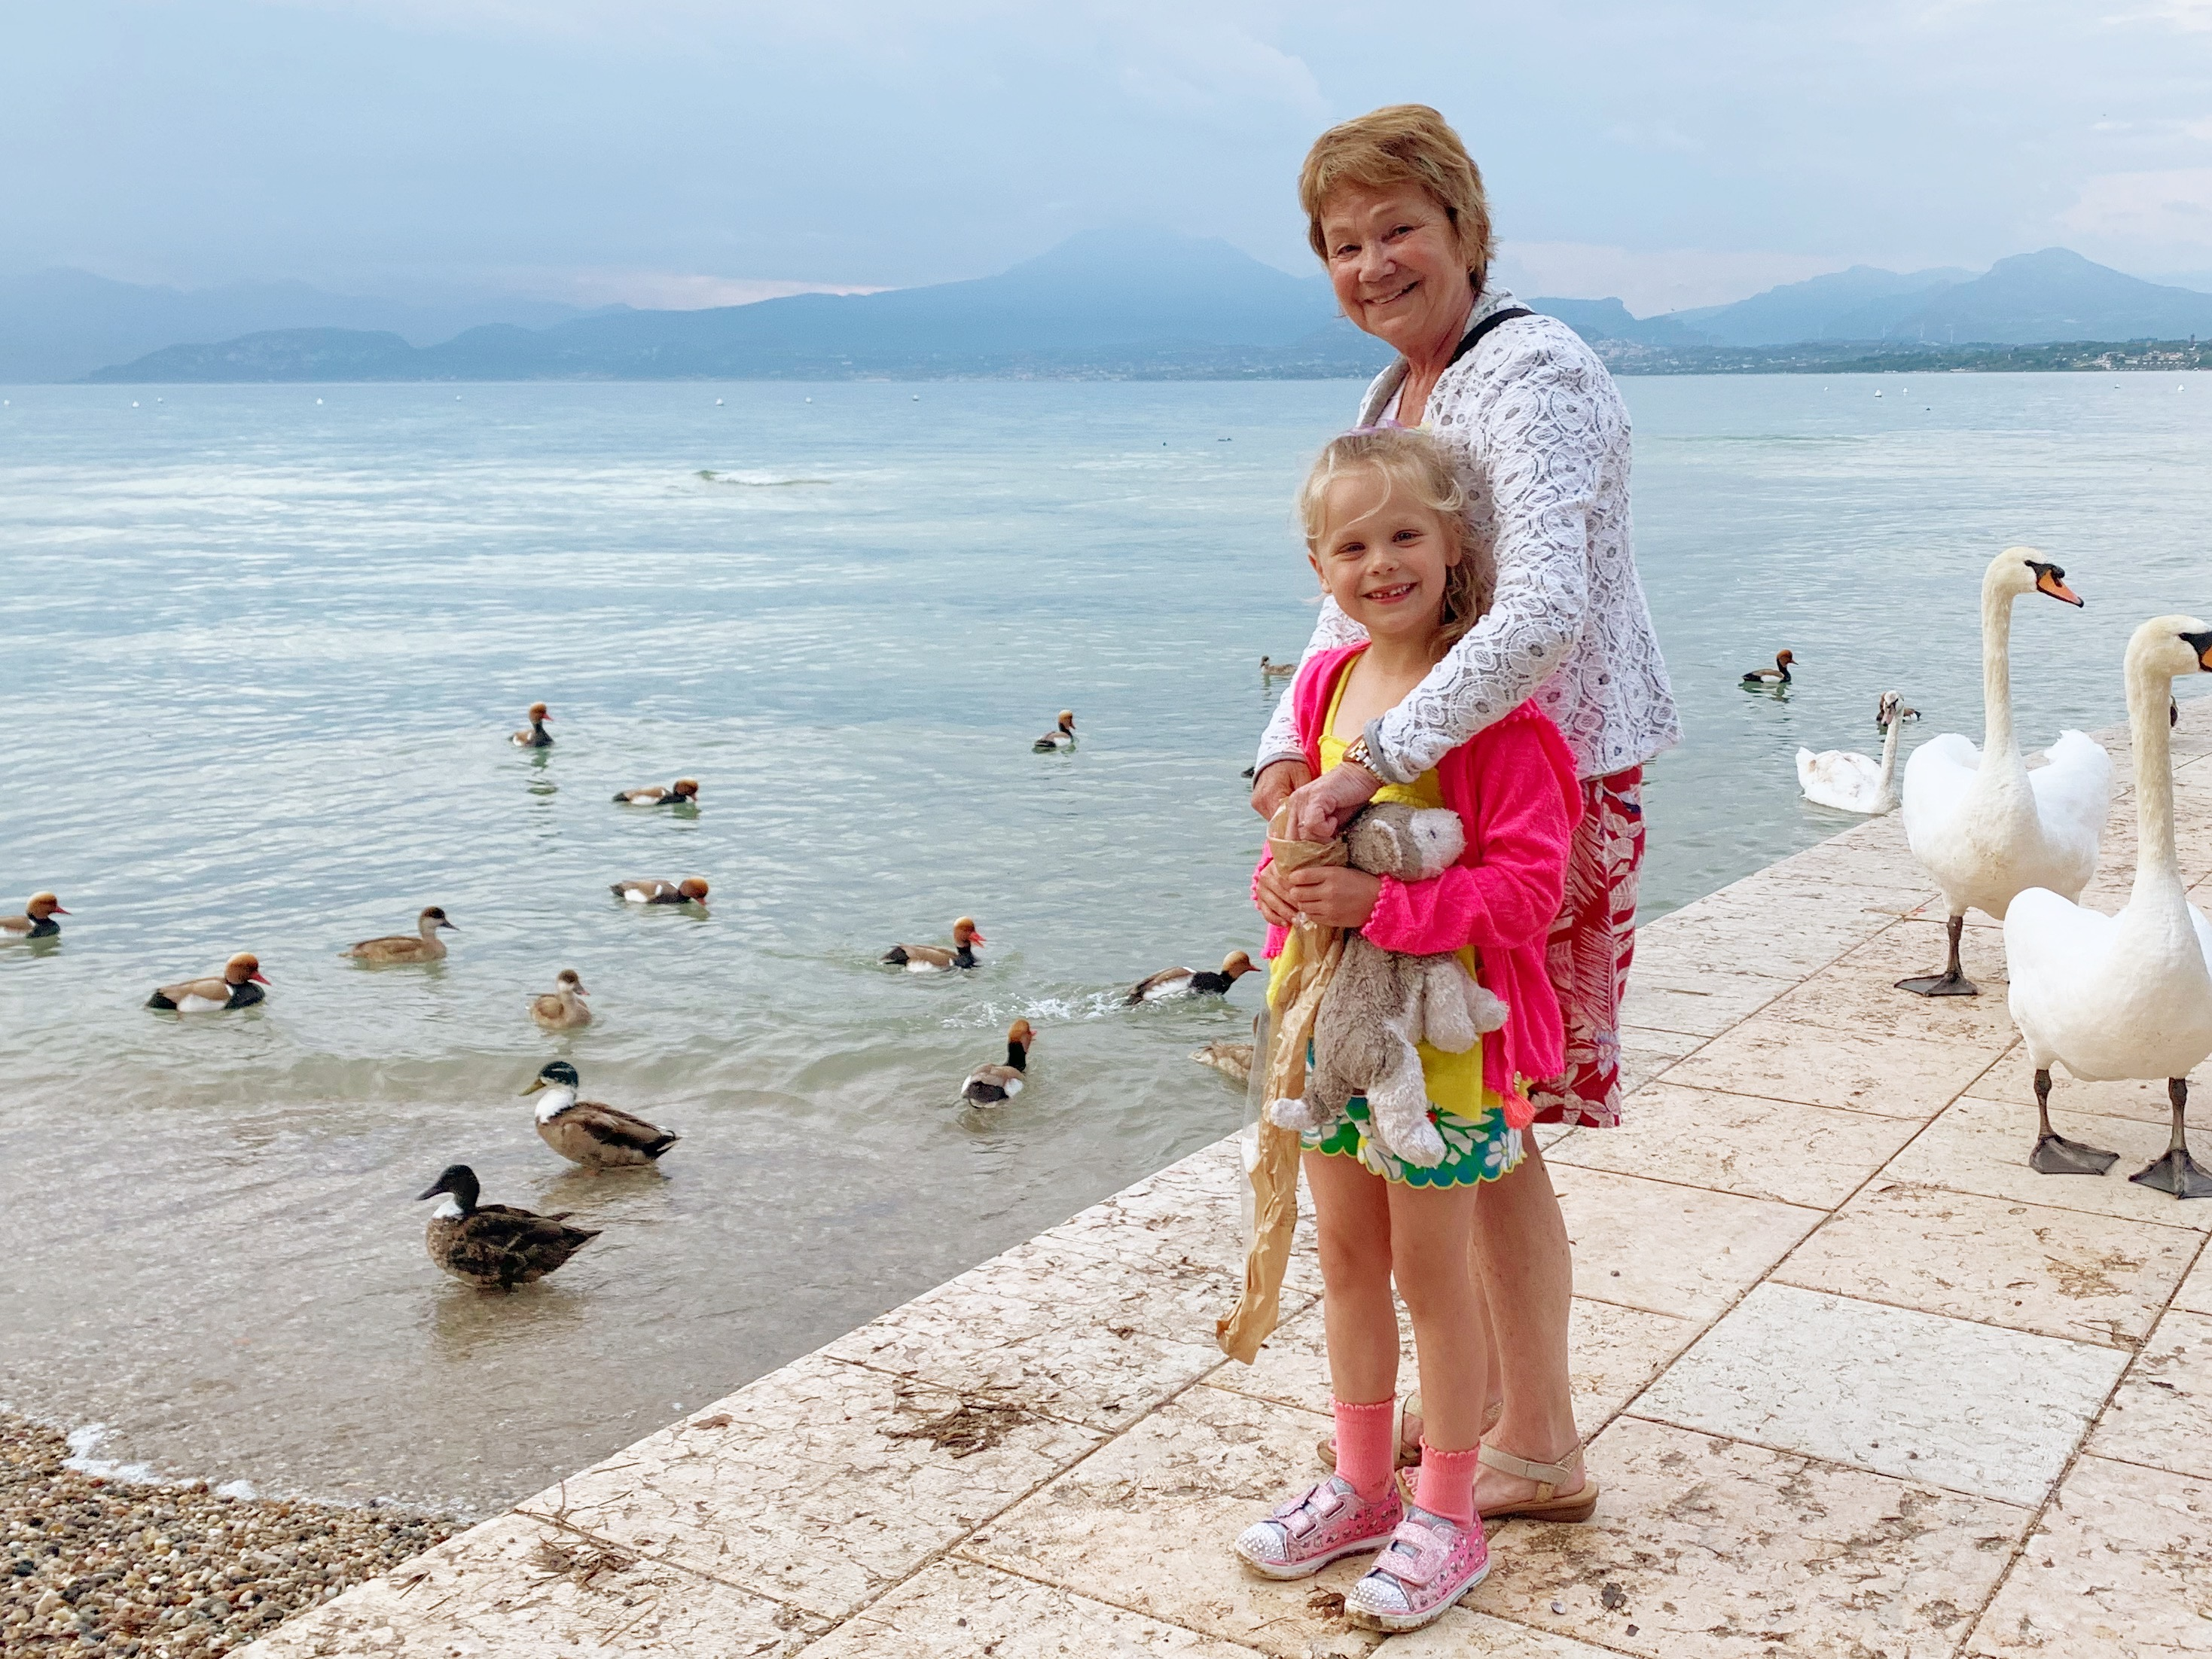 A grandmother and her granddaughter stand next to a lake surrounded by ducks and swans